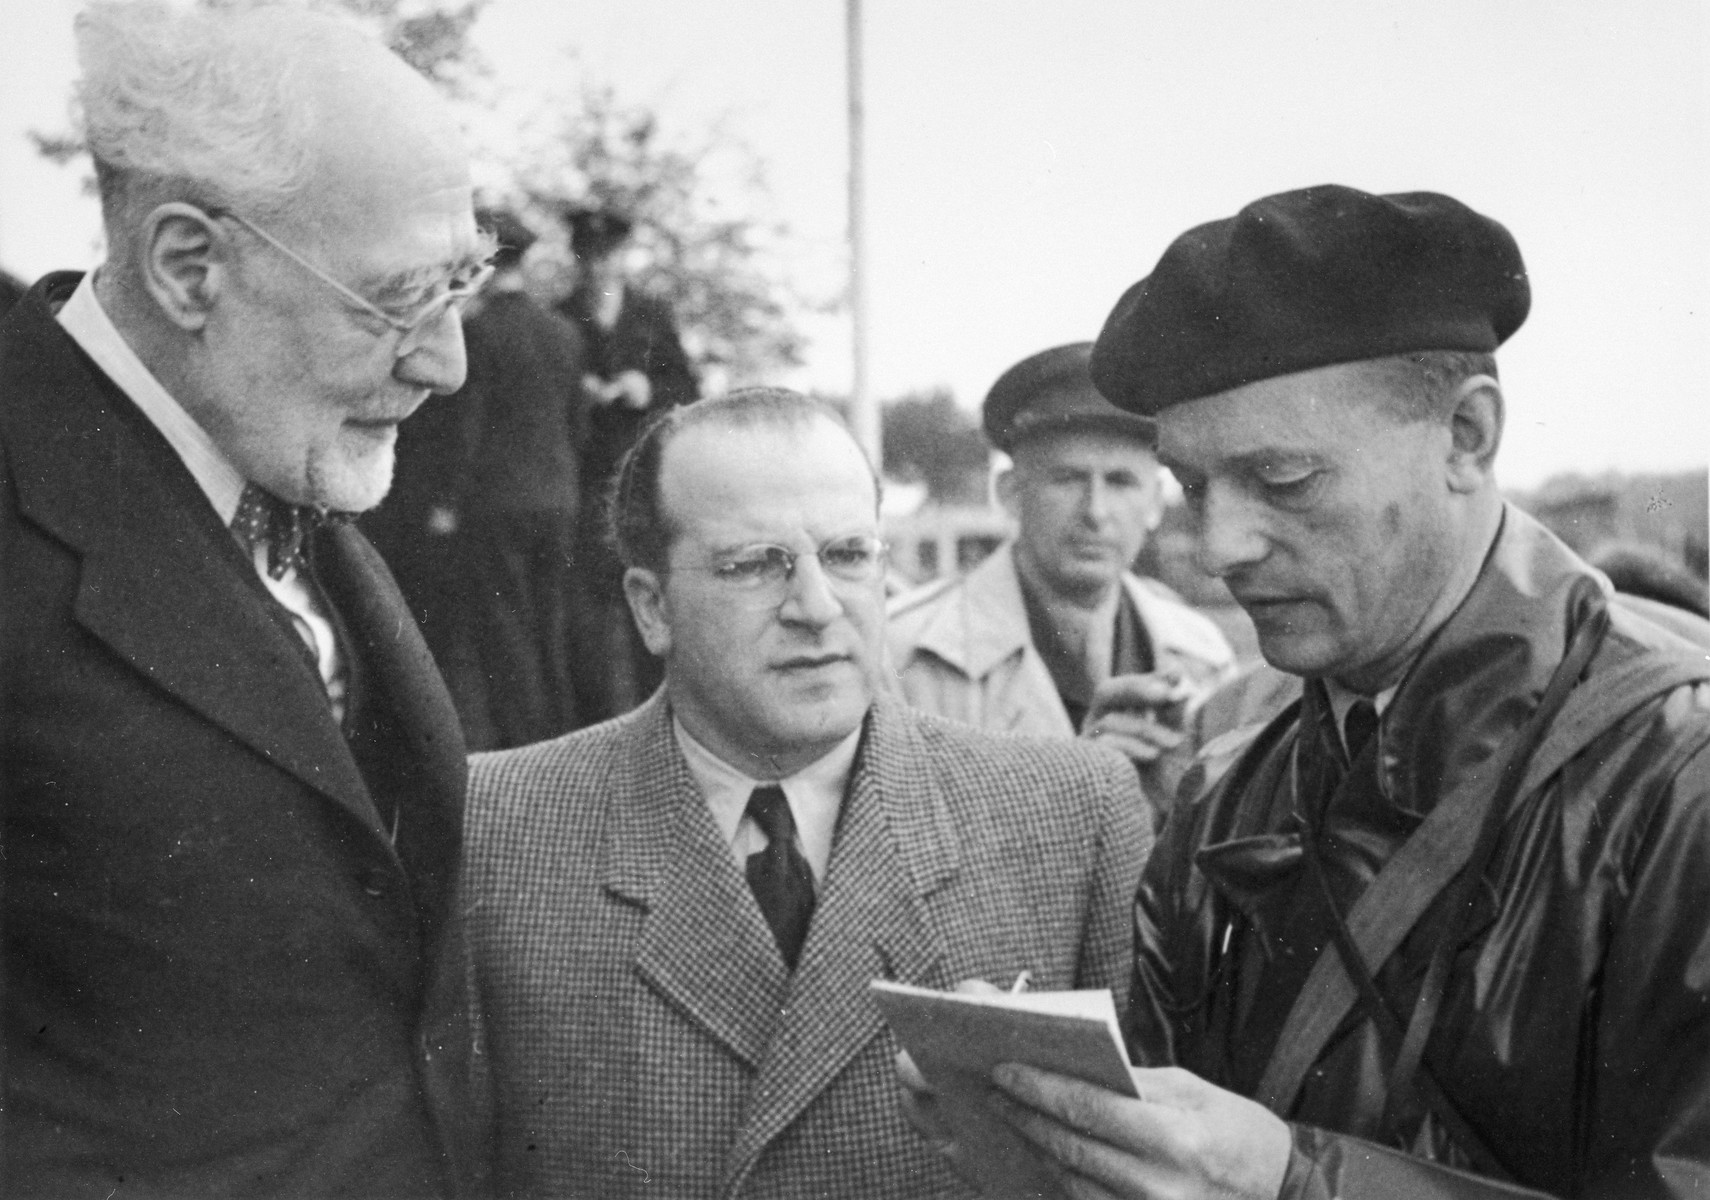 Rabbi Leo Baeck is interviewed by a British soldier upon his arrival in Hamburg at the start of a three week visit to Germany.  Also pictured in Norbert Wollheim (wearing glasses in the center).  Baeck was greeted at the airport by Norbert Wollheim, Chairman of the Central Committee of Jews in the British Zone.  Baeck's trip included participation in an evangelical congress in Darmstadt on October 12, as well as numerous appearances before local Jewish communities.